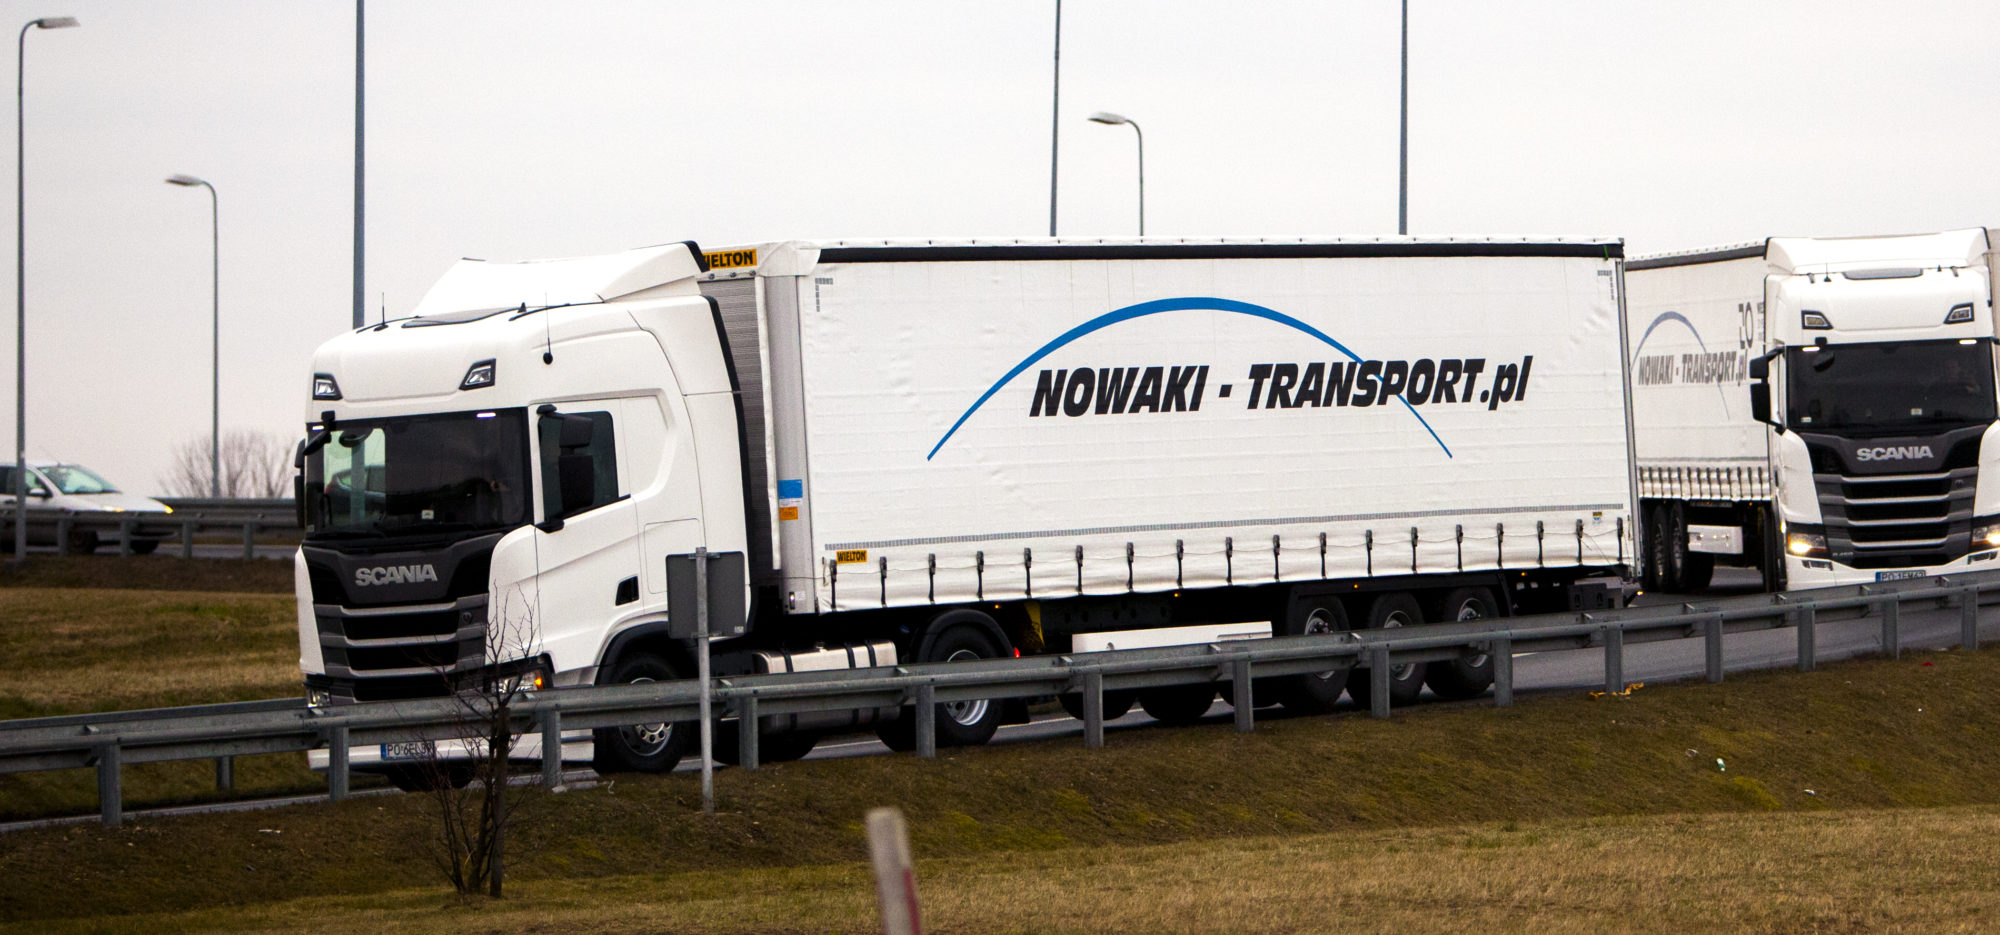 NOWAKI-TRANSPORT